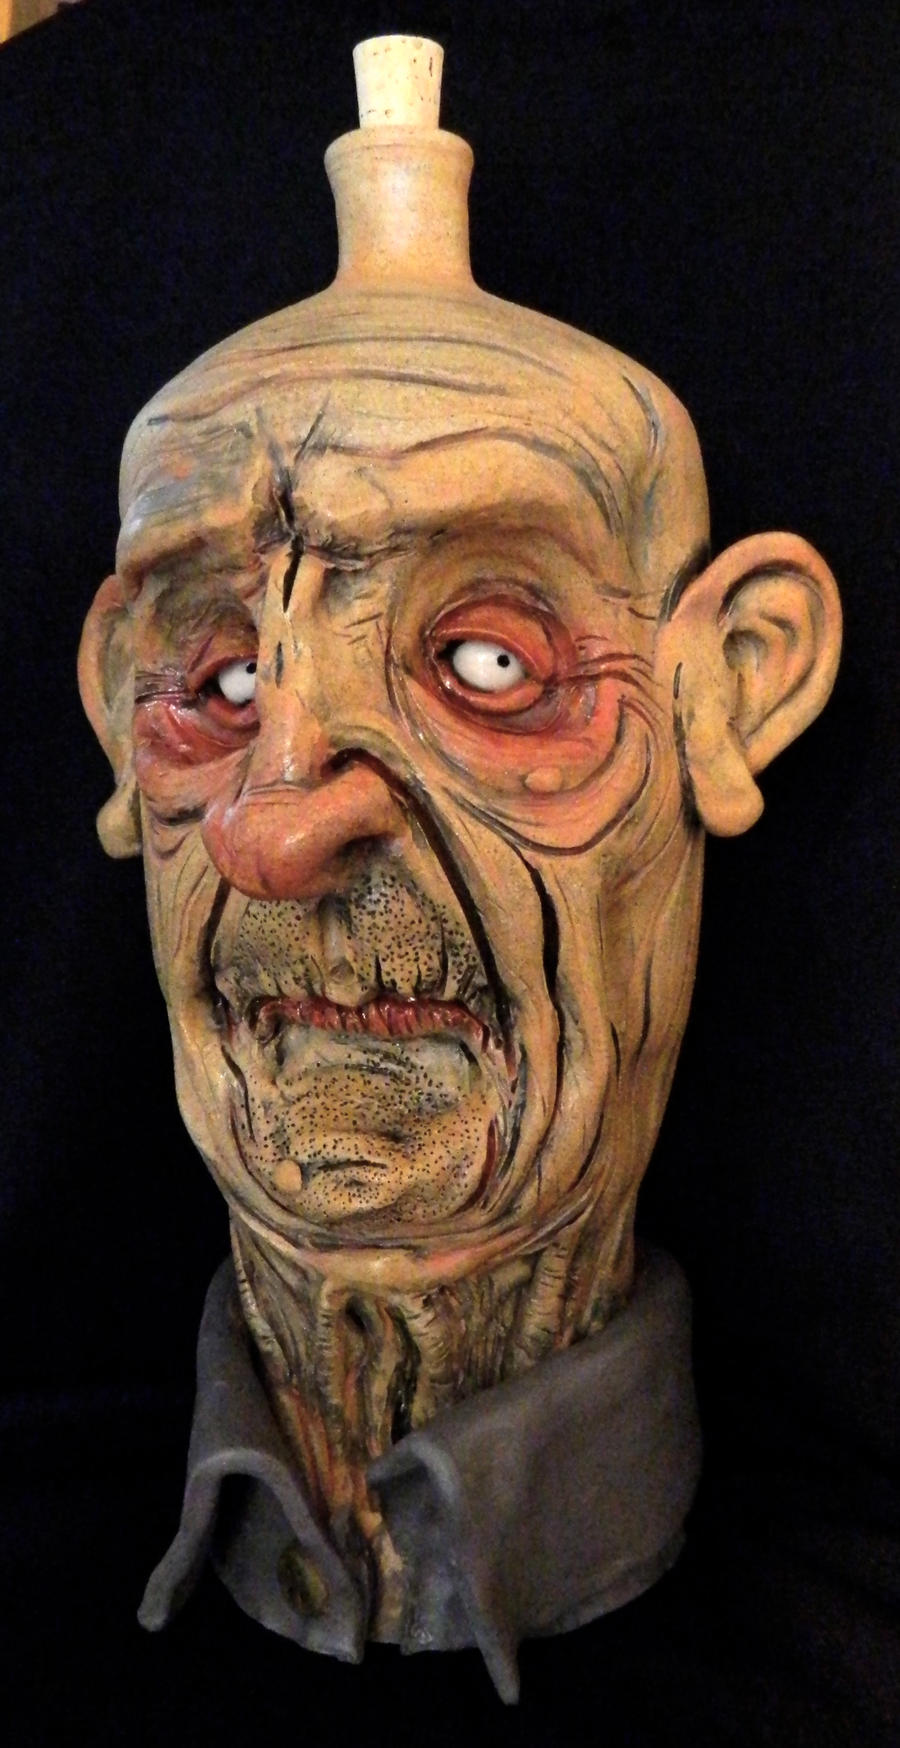 Zombie Bill Jug by thebigduluth